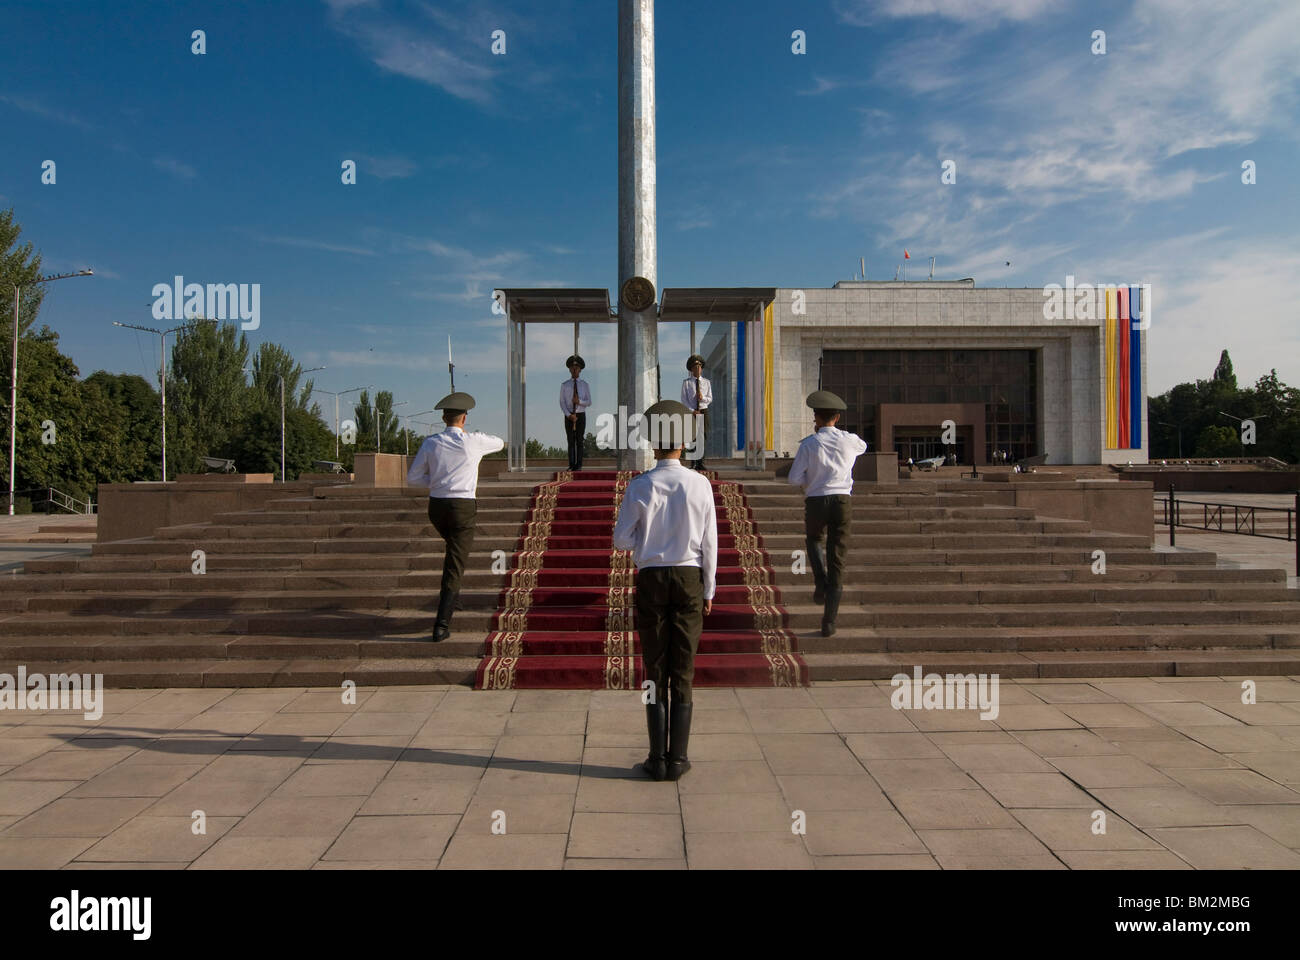 Soldiers at Ala-Too Square, Bishkek, Kyrgyzstan - Stock Image